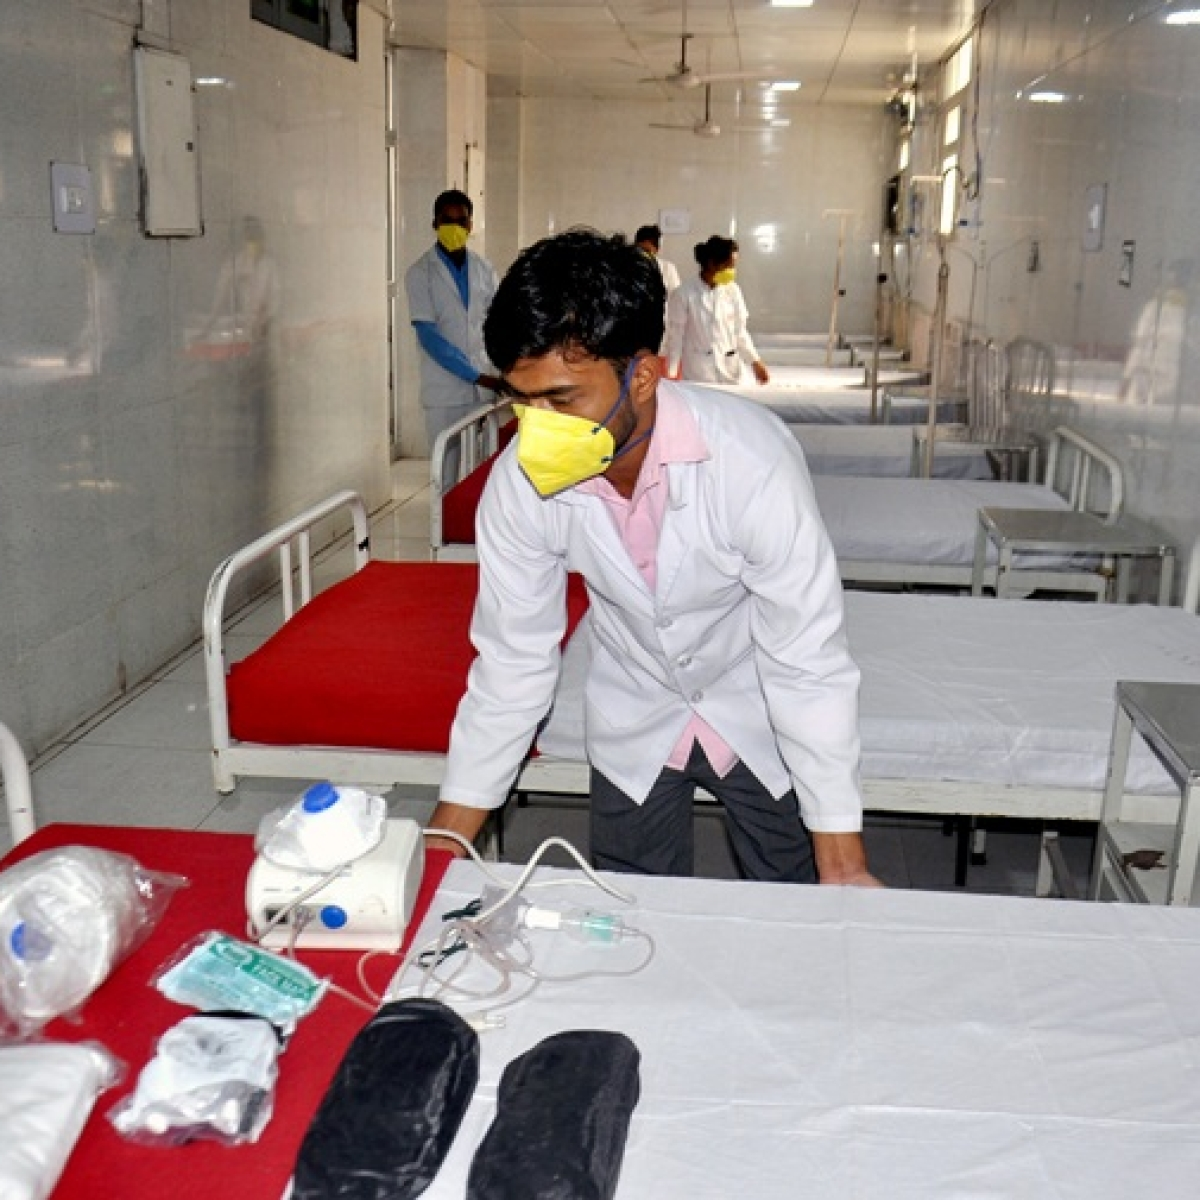 Coronavirus updates in Mumbai: After one patient tested positive for COVID-19, Hinduja Hospital takes preventive measures to check patients